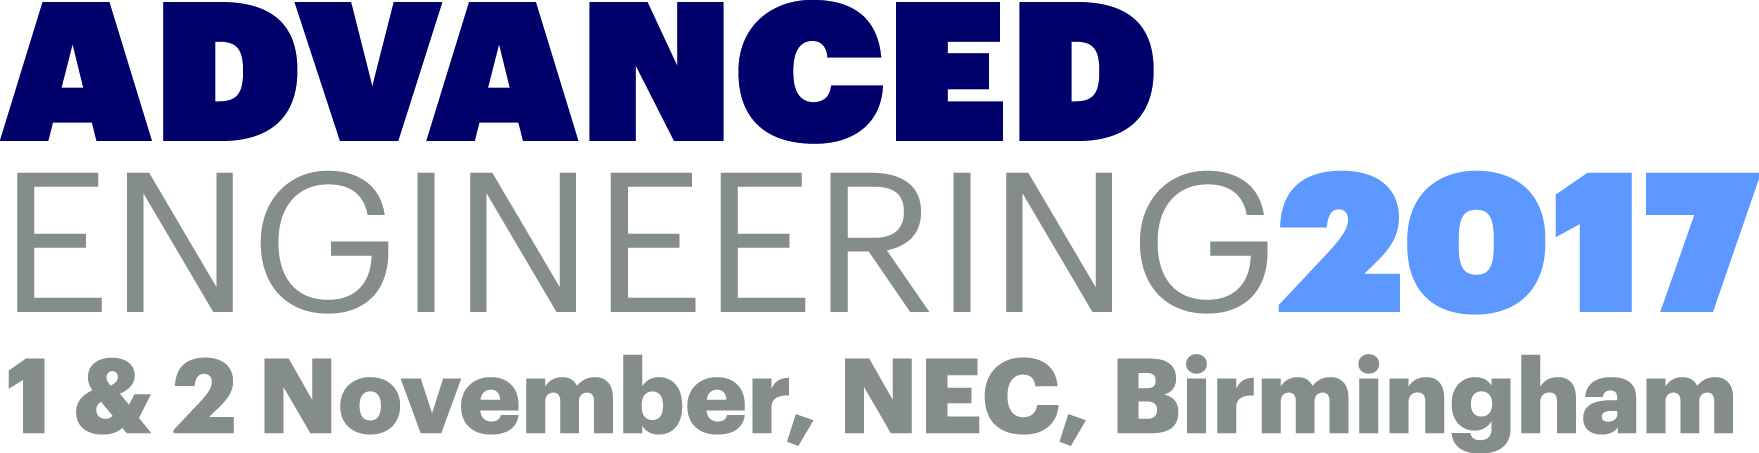 ADVANCED-ENGINEERING-2017-logo.jpg